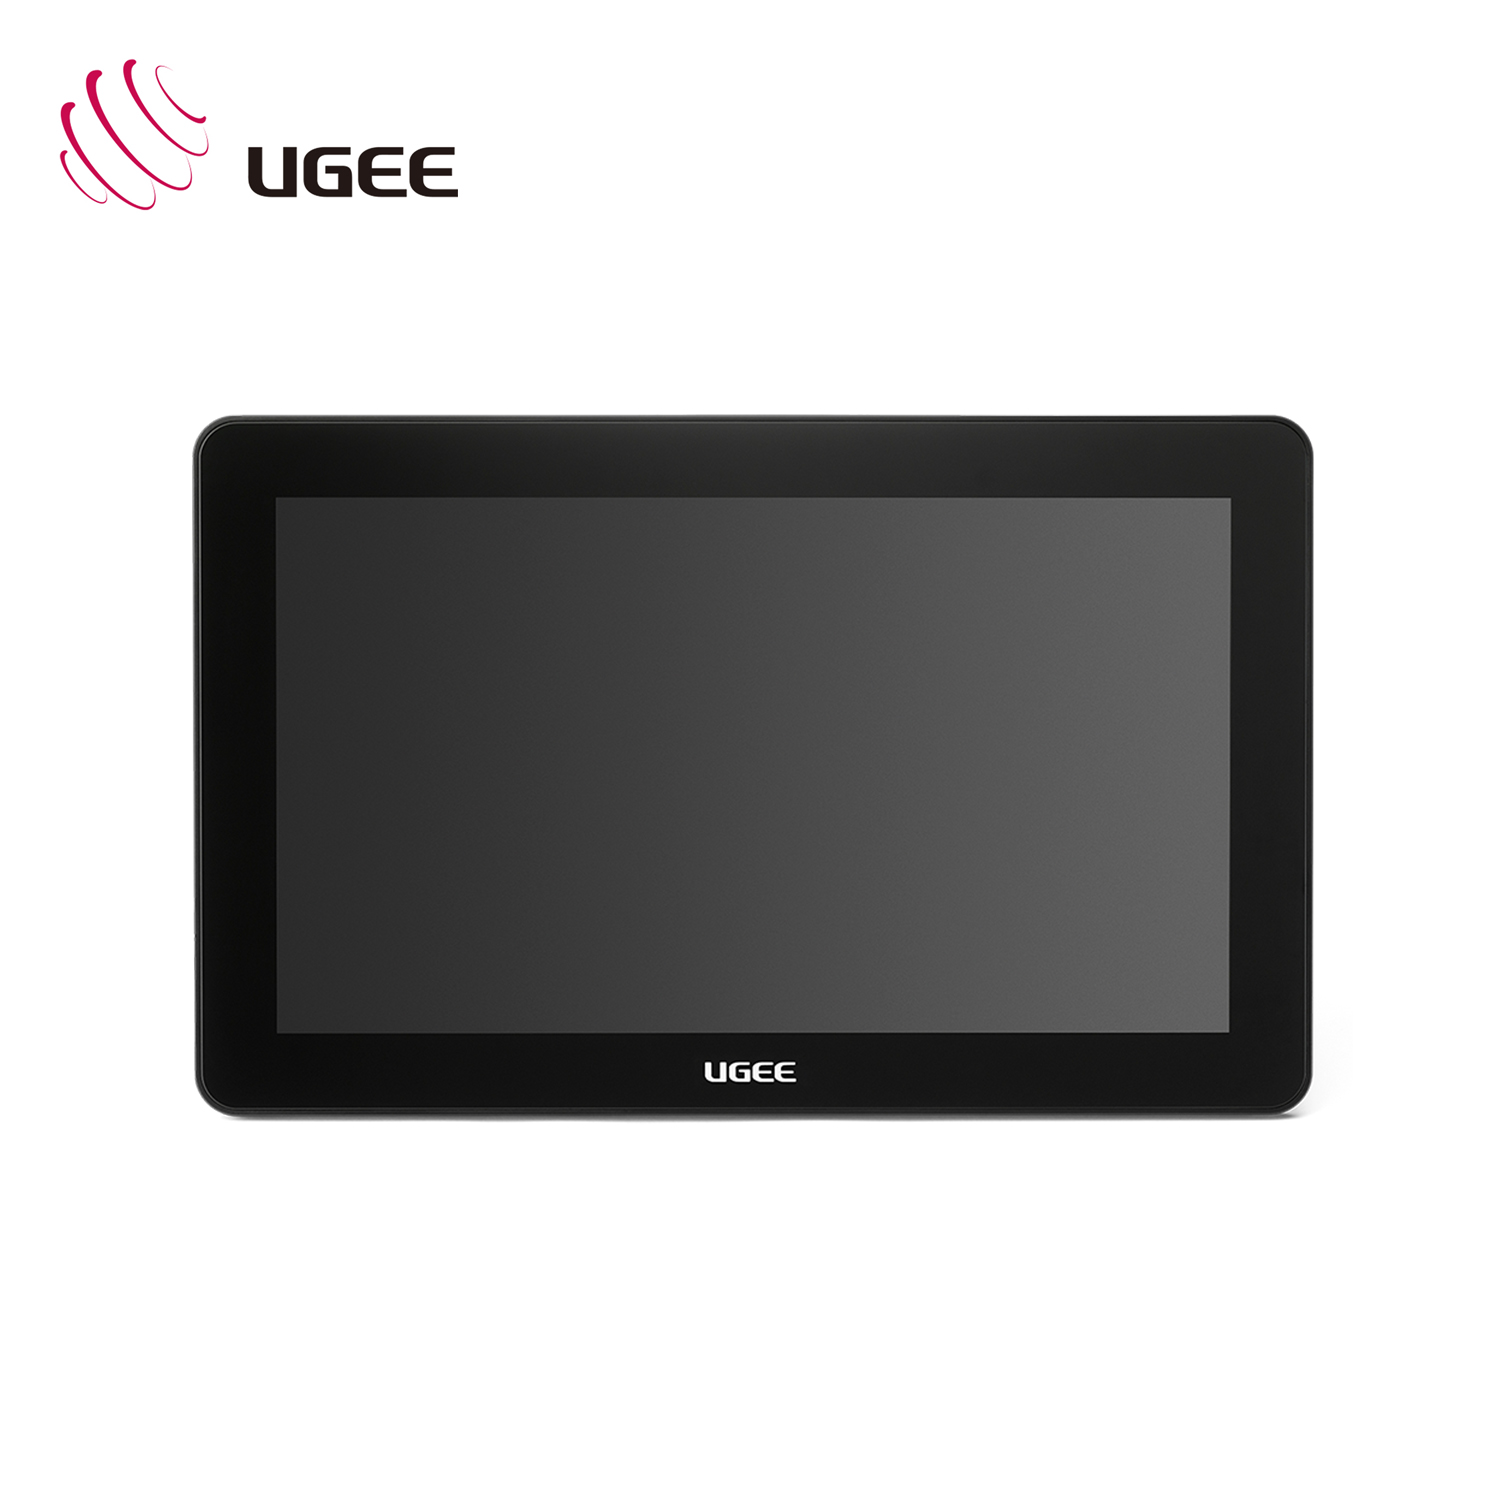 Ugee UGEE Paperless E-Signature Solution 15.6 inch IPS LCD Screen Electronic Digital Writing Pen Display Graphic Tablet Monitor Handwriting Pads image10